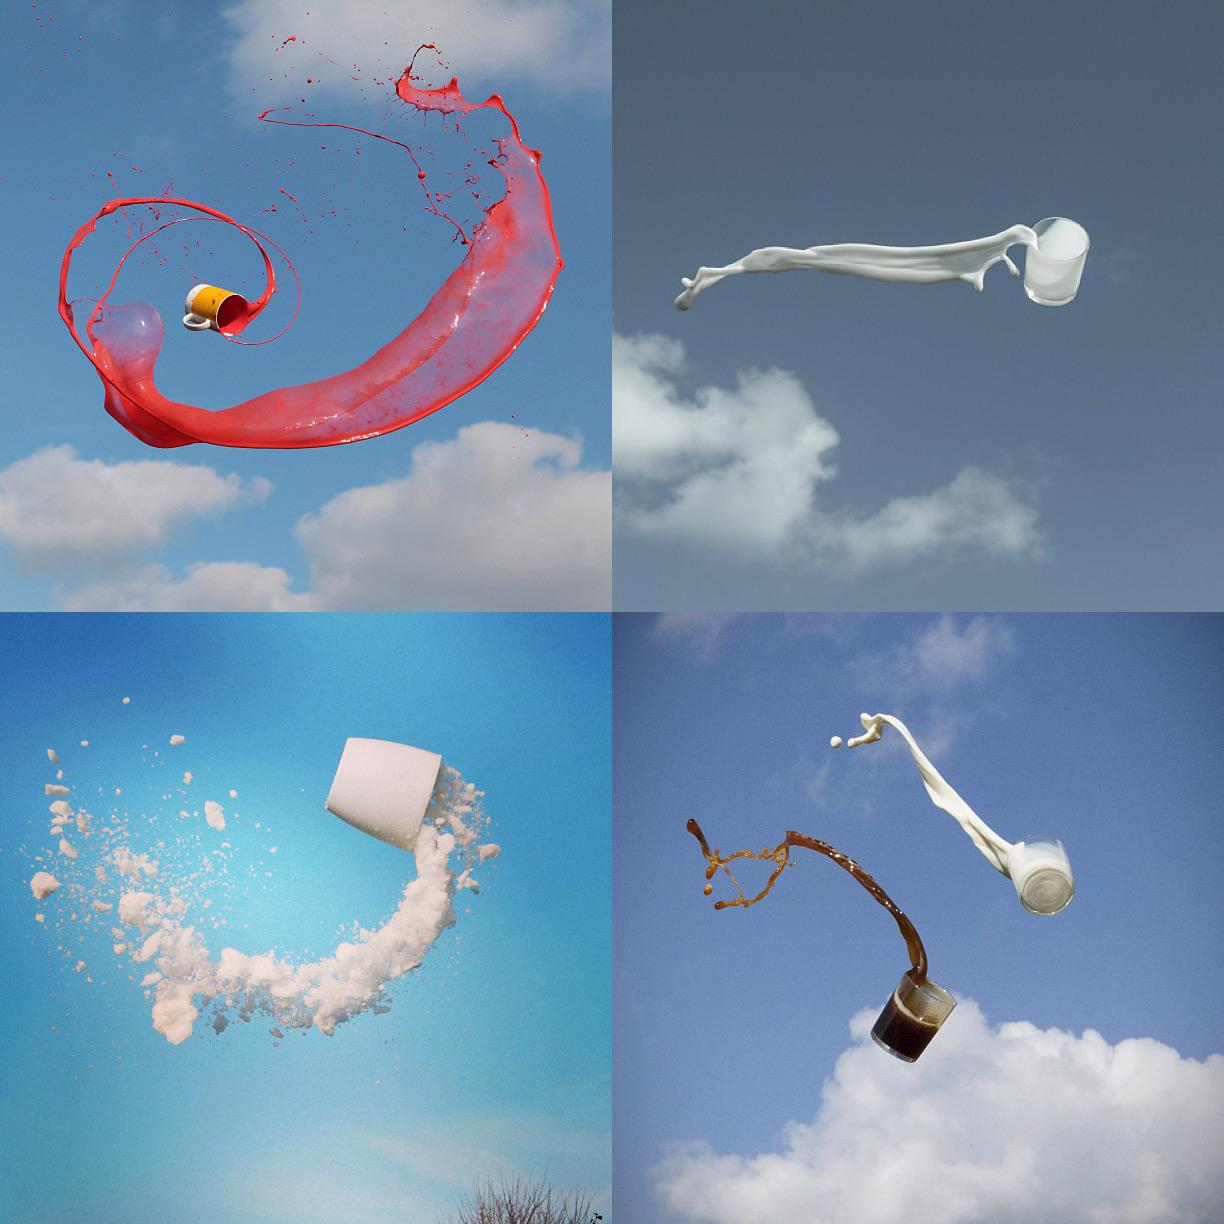 Flying Liquids in High-Speed Photography